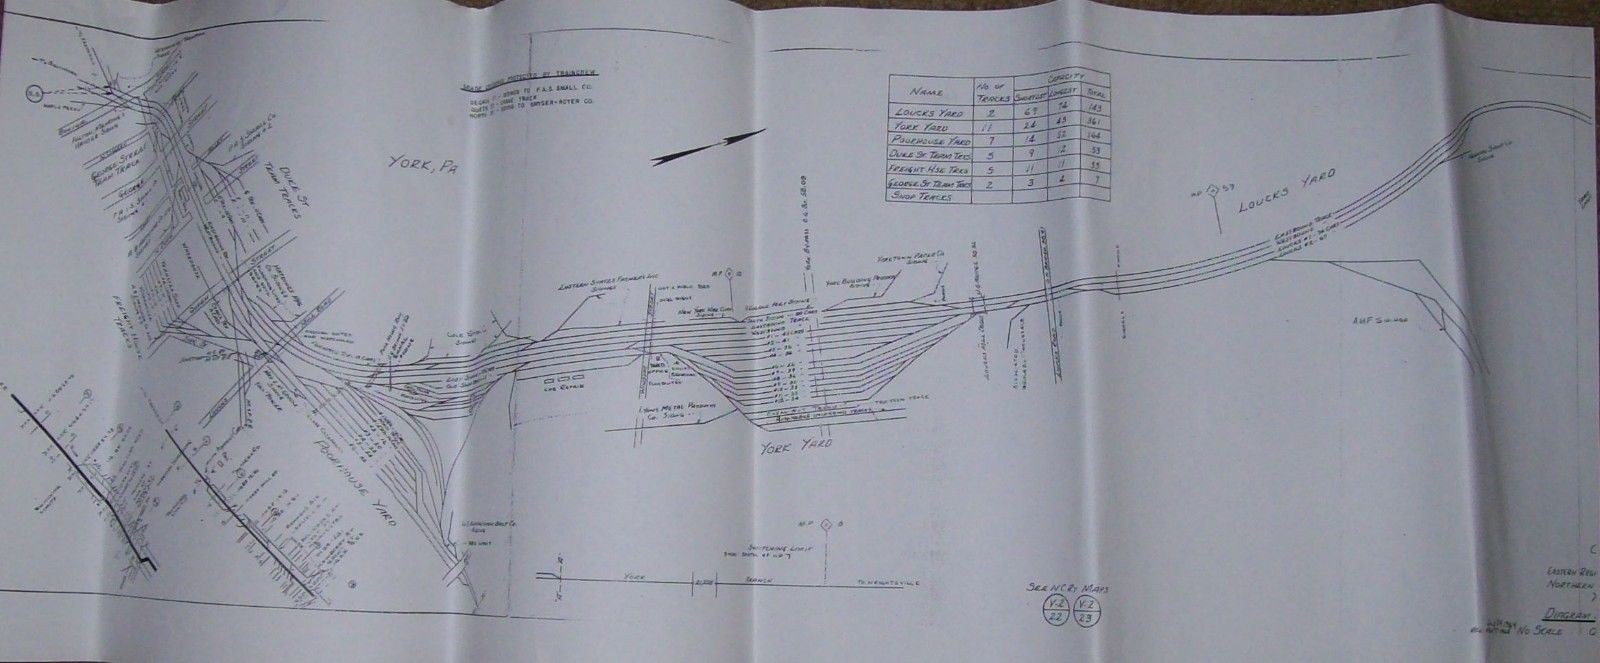 A map of the PRR yards from